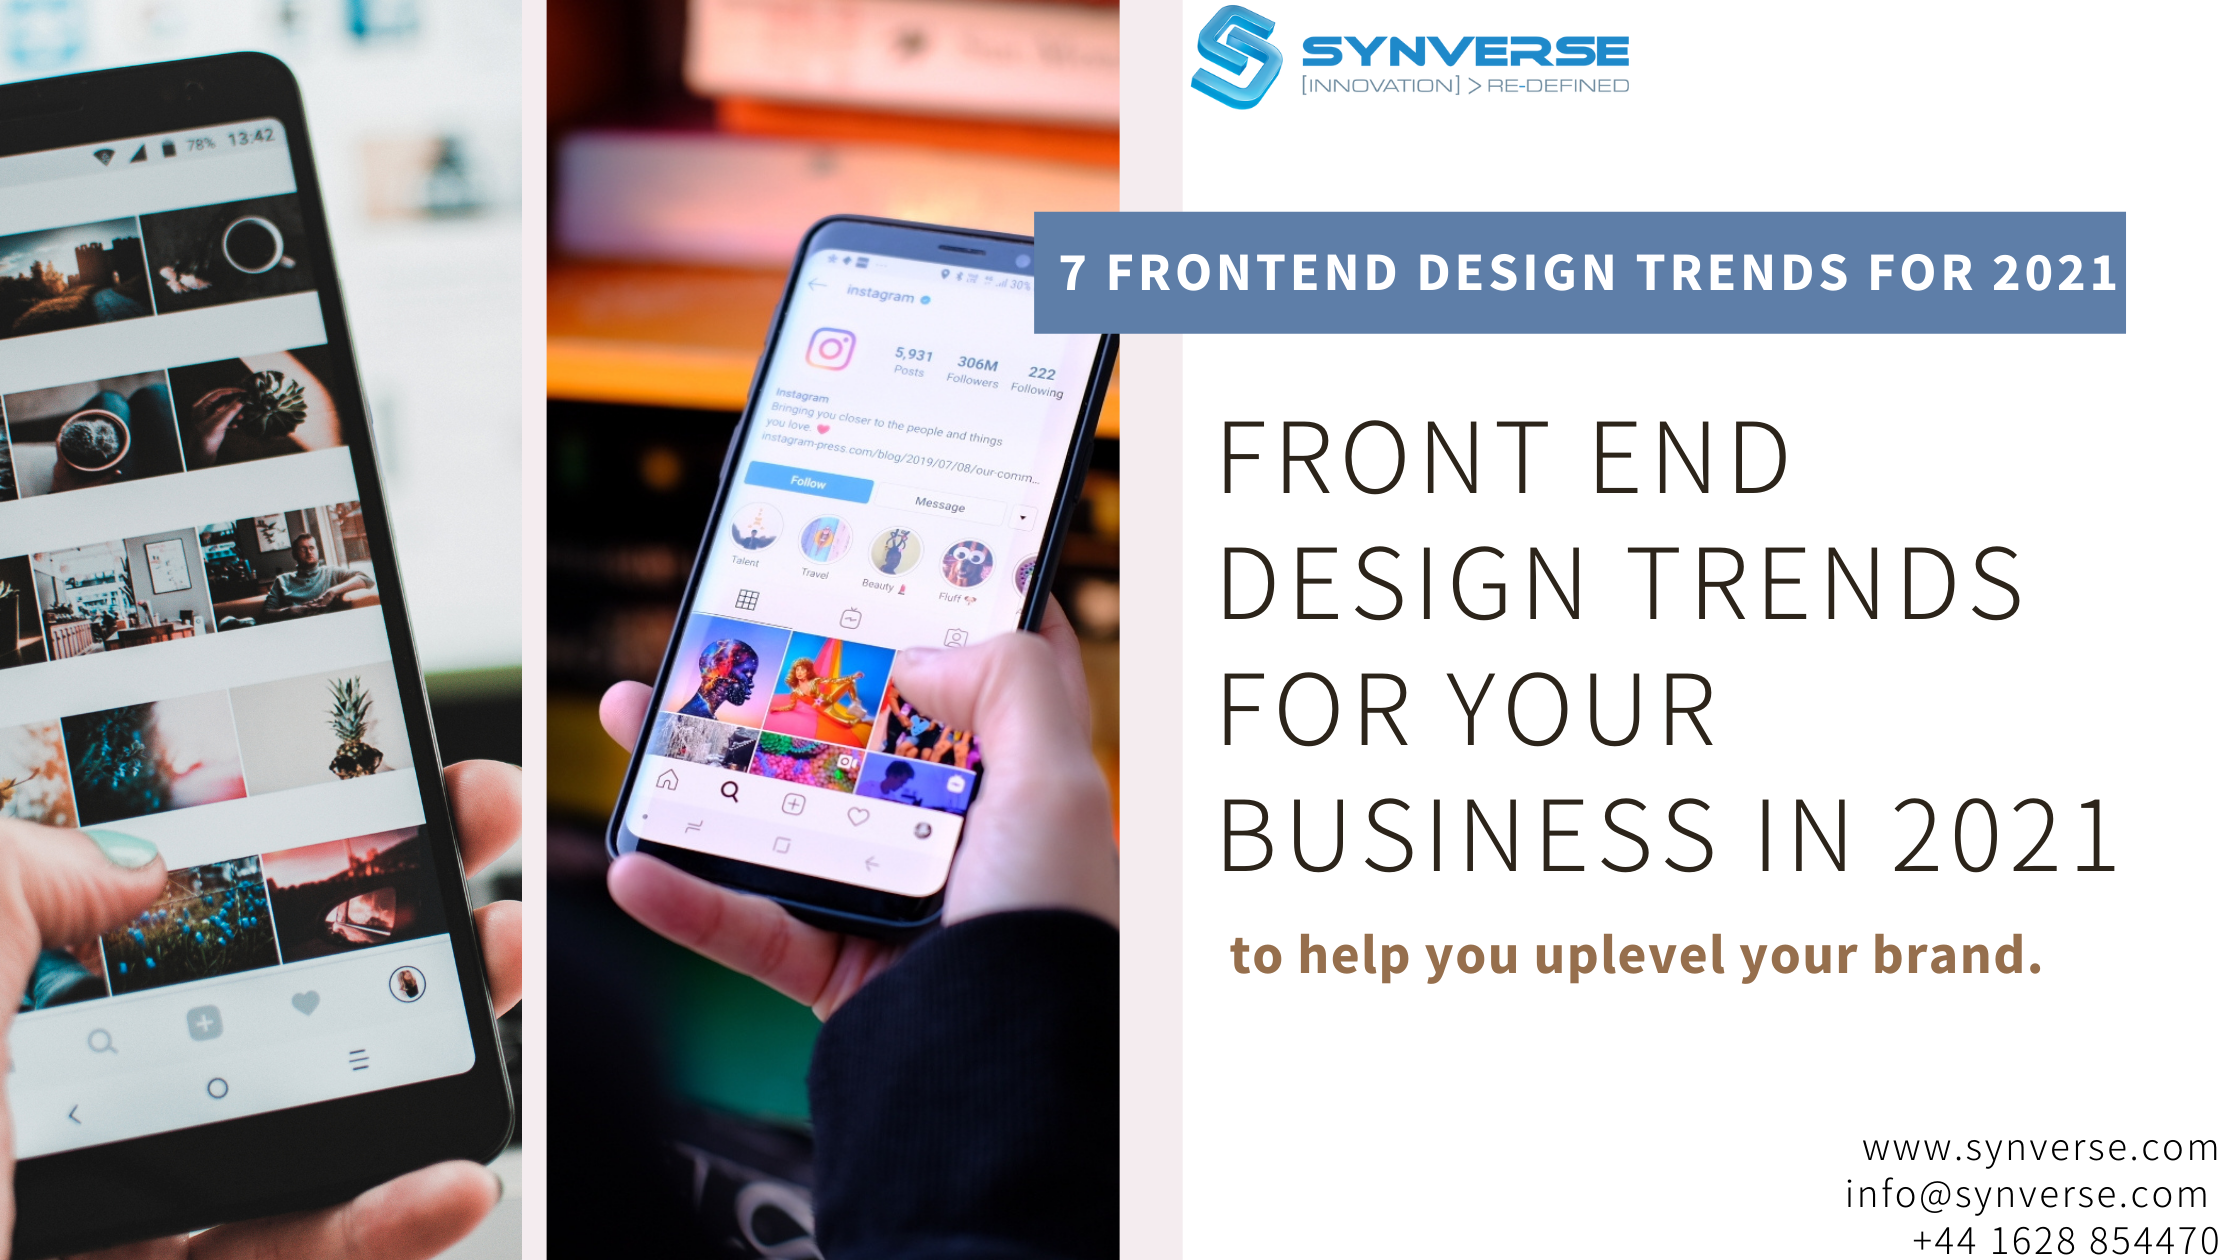 FRONT END DESIGN TRENDS FOR YOUR BUSINESS IN 2021